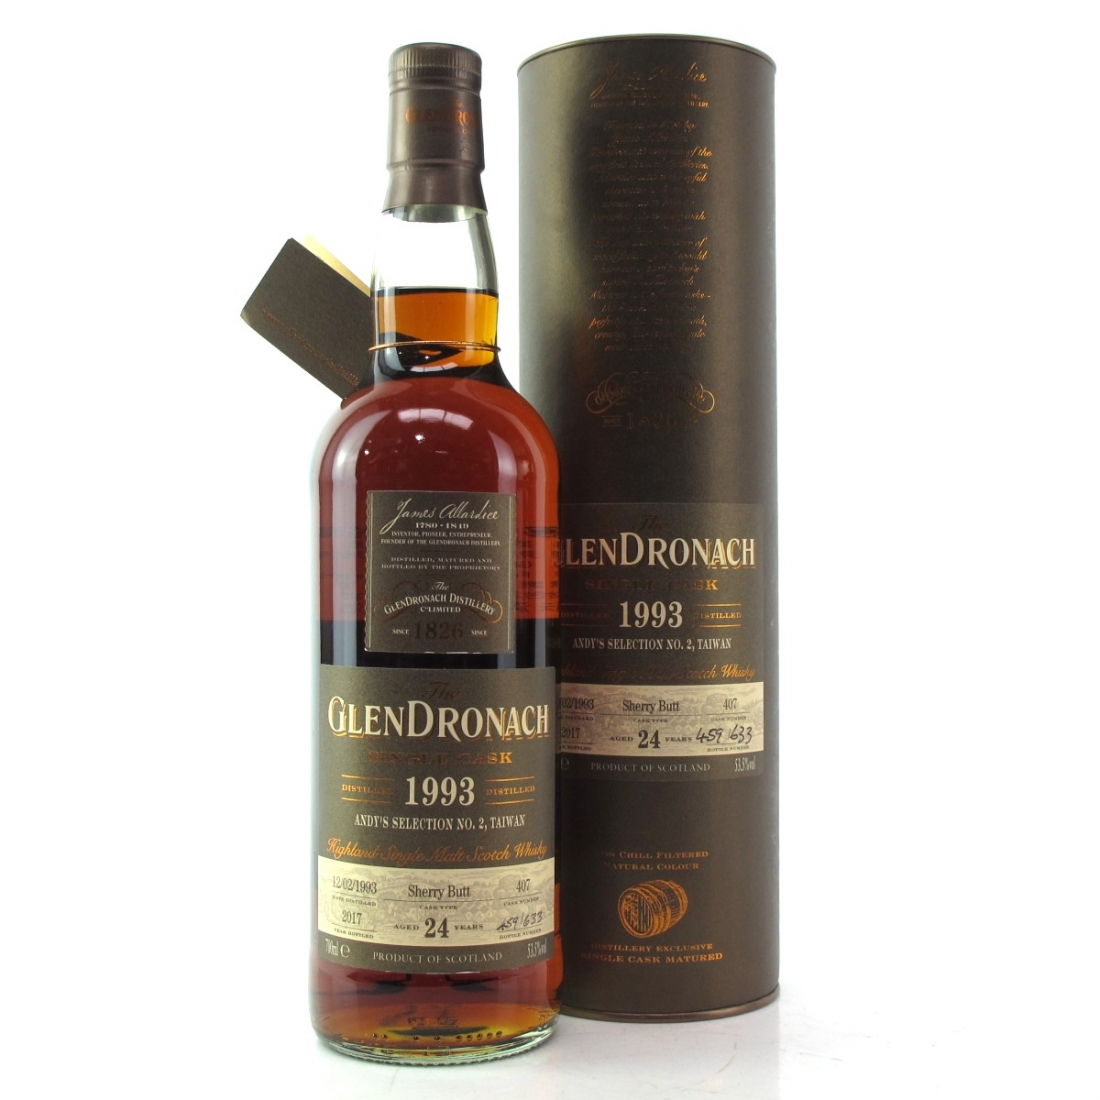 Glendronach 1993 Single Cask 24 Year Old #407 / Andy's Selection No.2, Taiwan